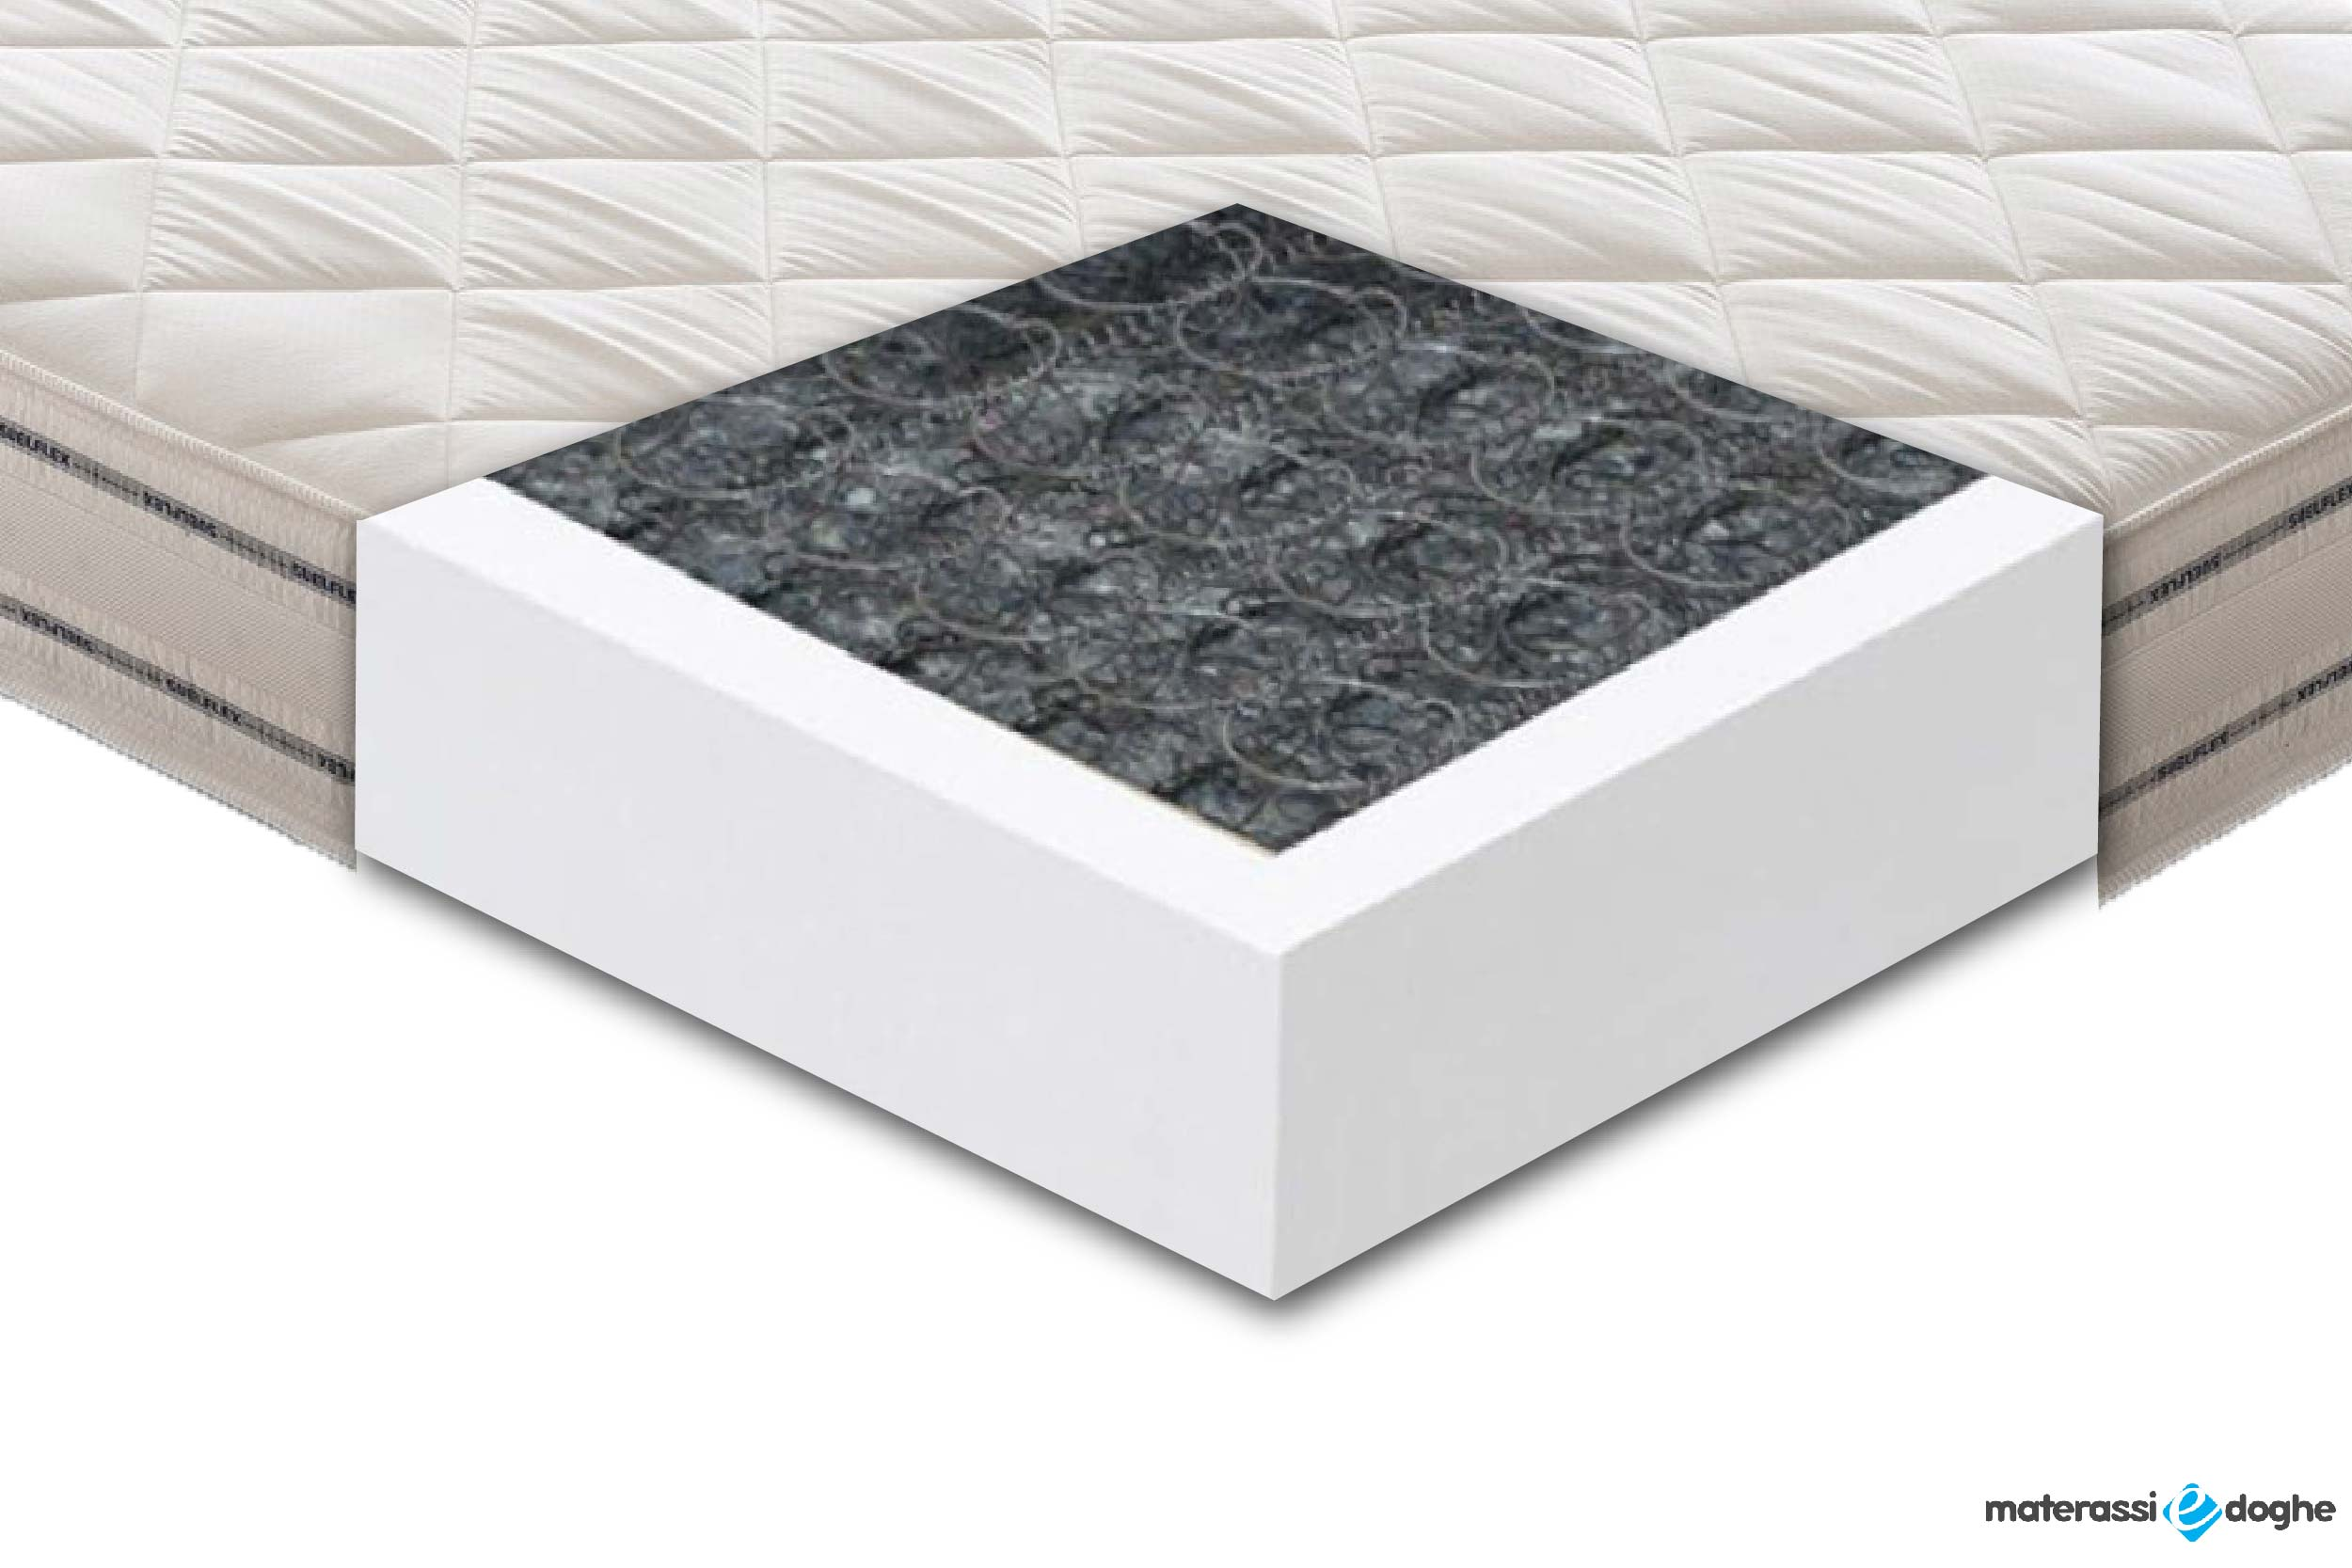 Fireproof Mattress Box With Biconical Springs 22cm High Mod.H22